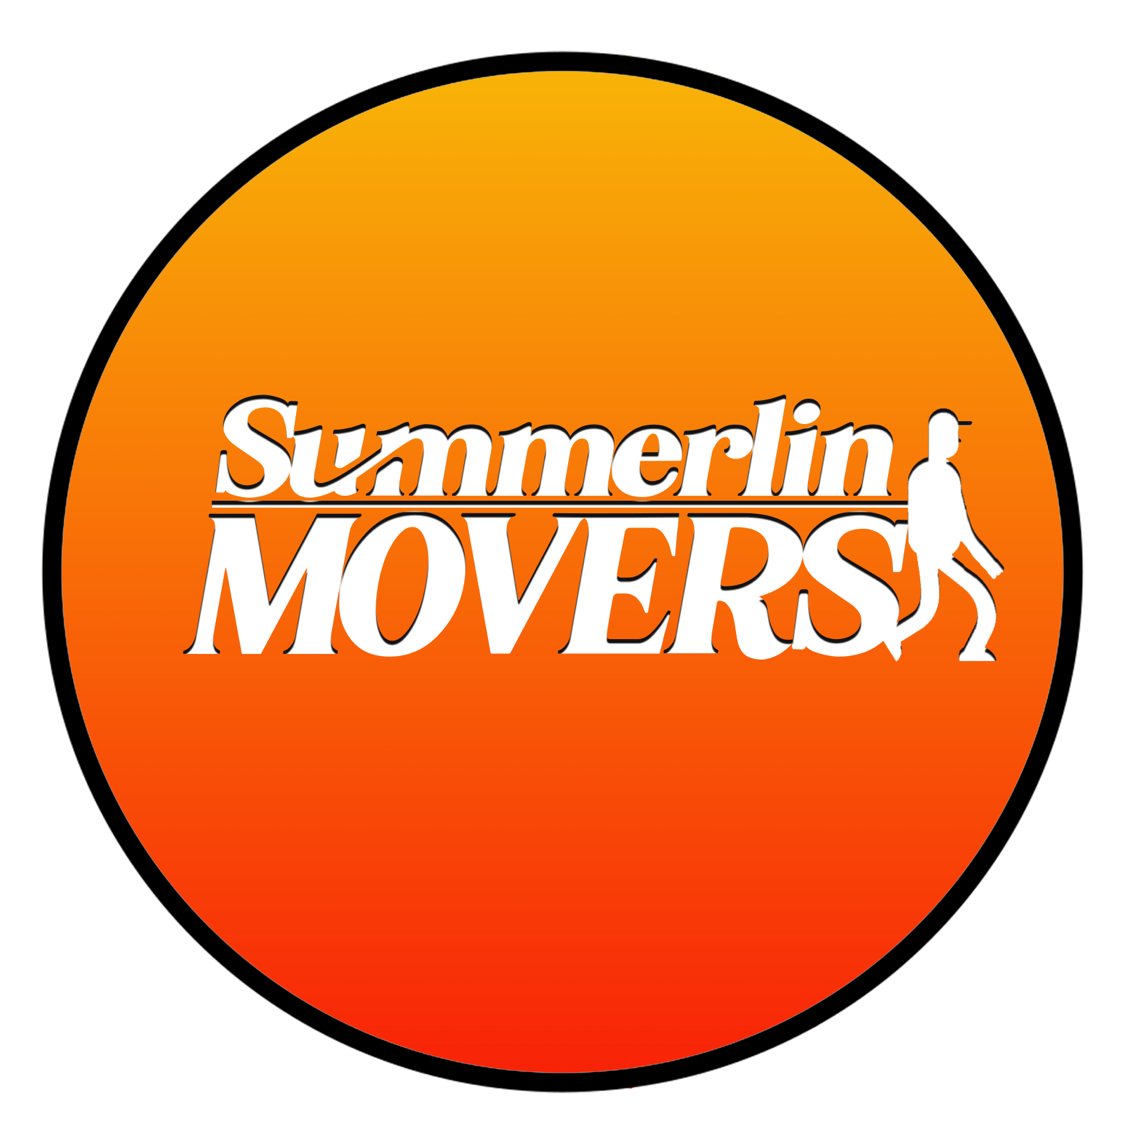 Summerlin Movers  logo